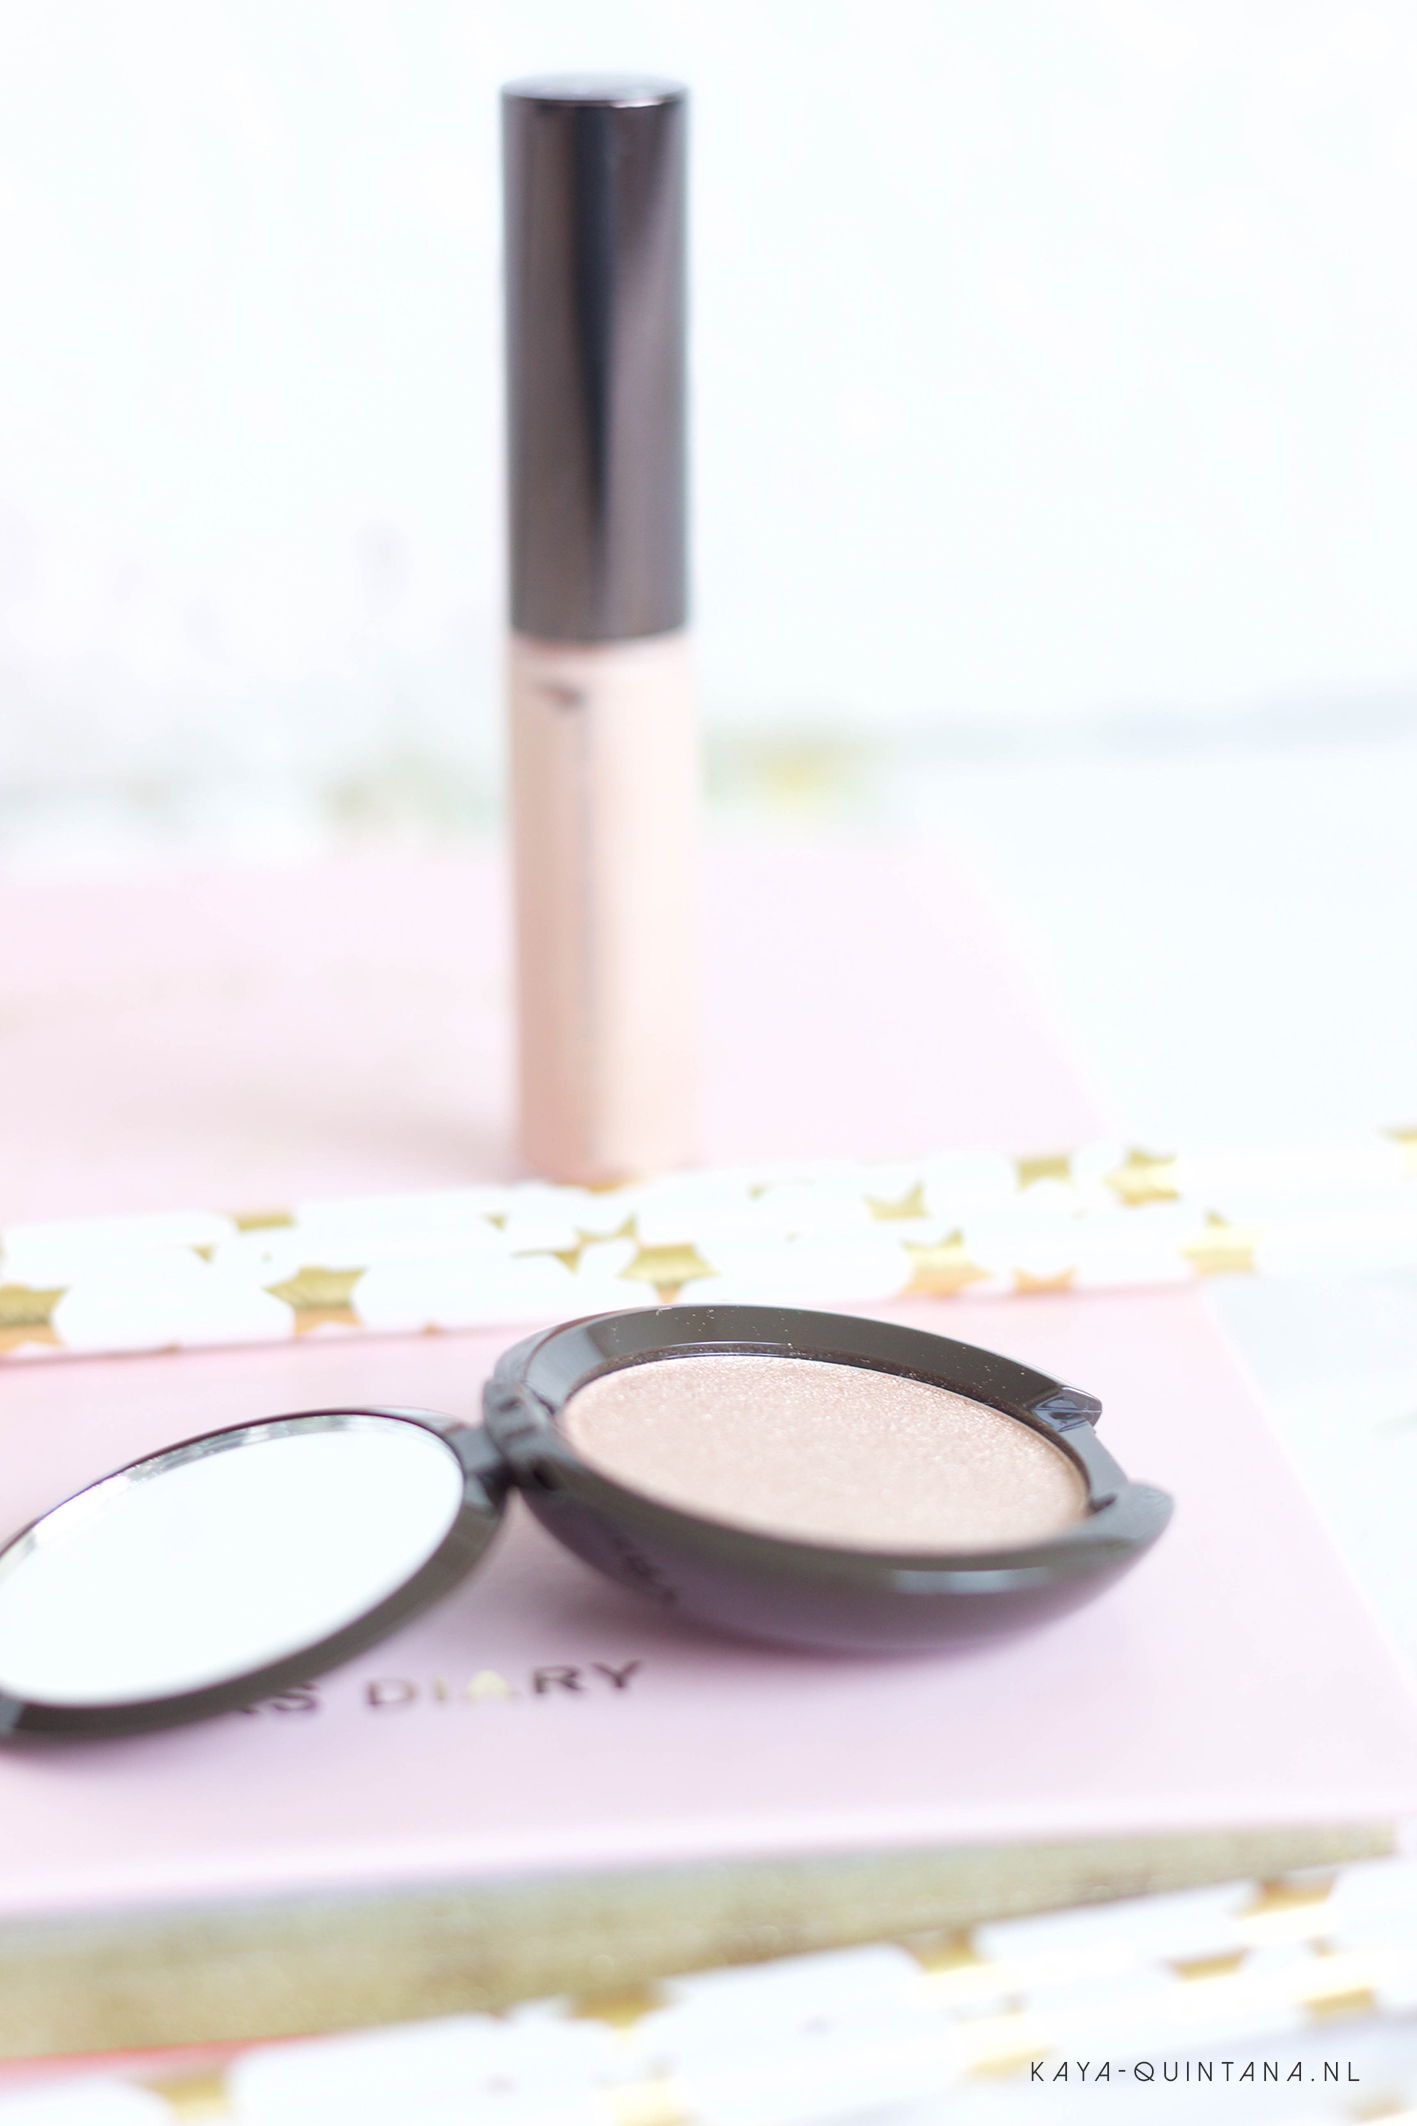 Shimmering Skin Perfector Pressed in Opal